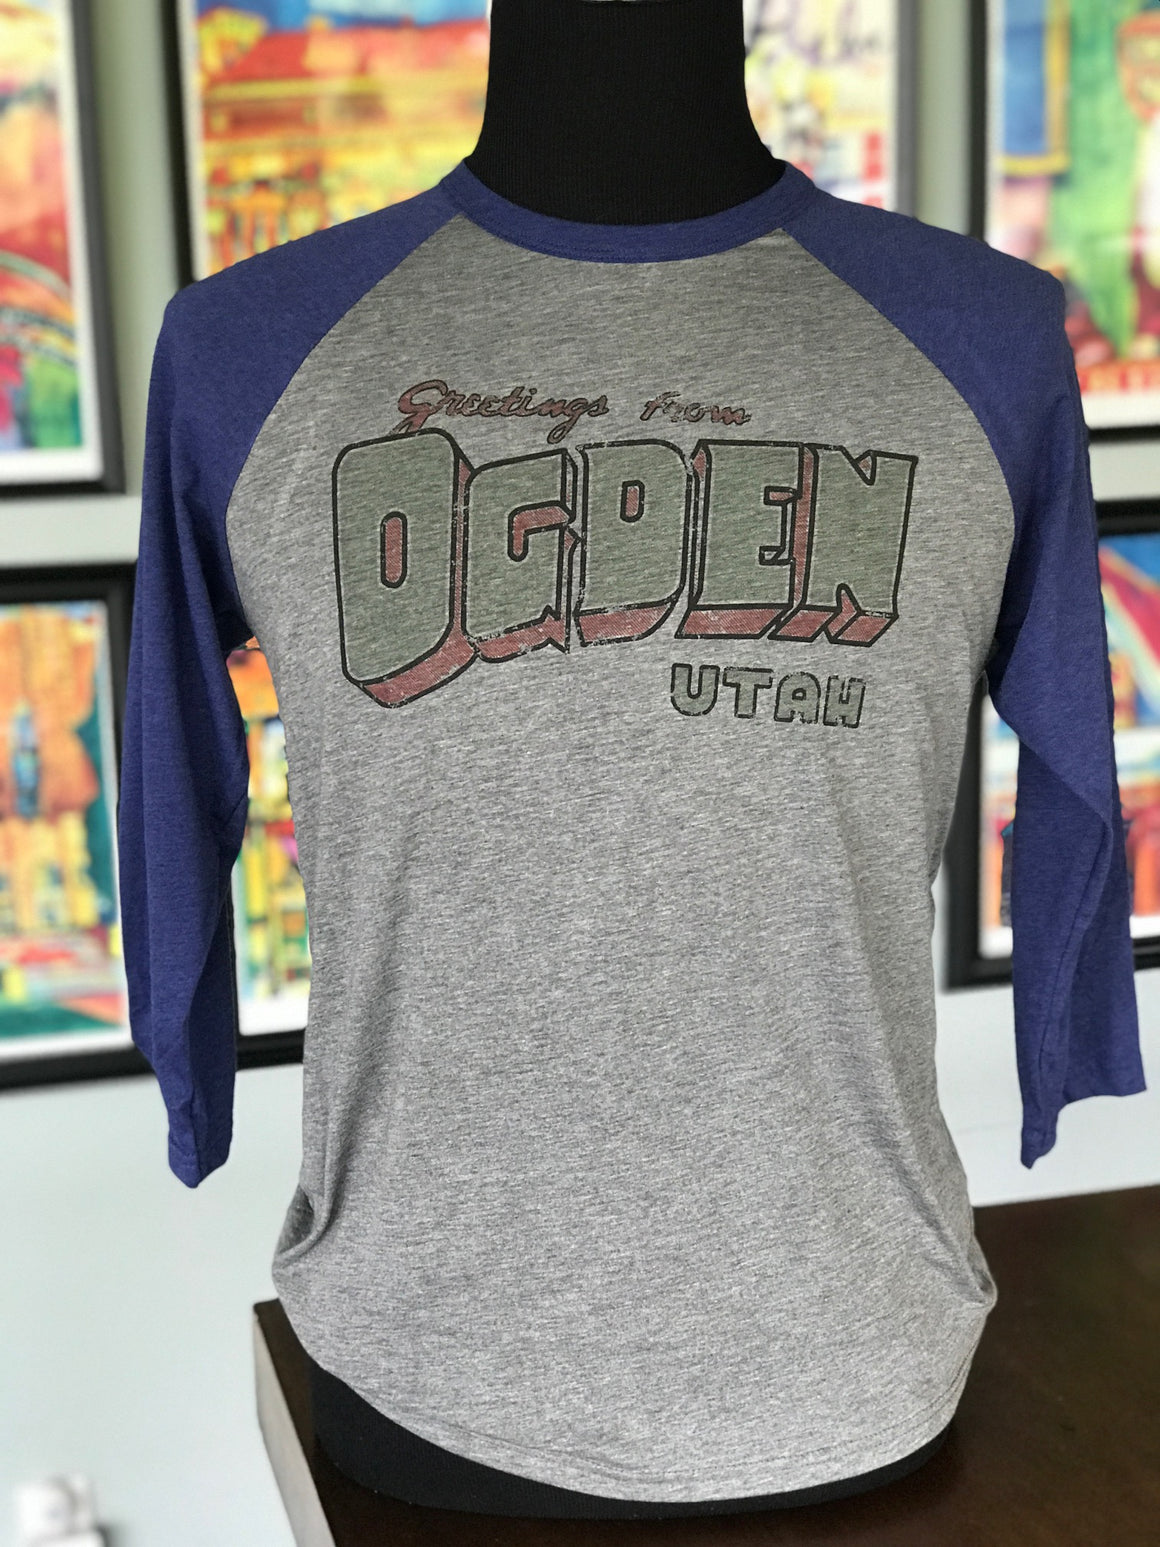 Greetings from Ogden Baseball Tee(Blue Sleeve)